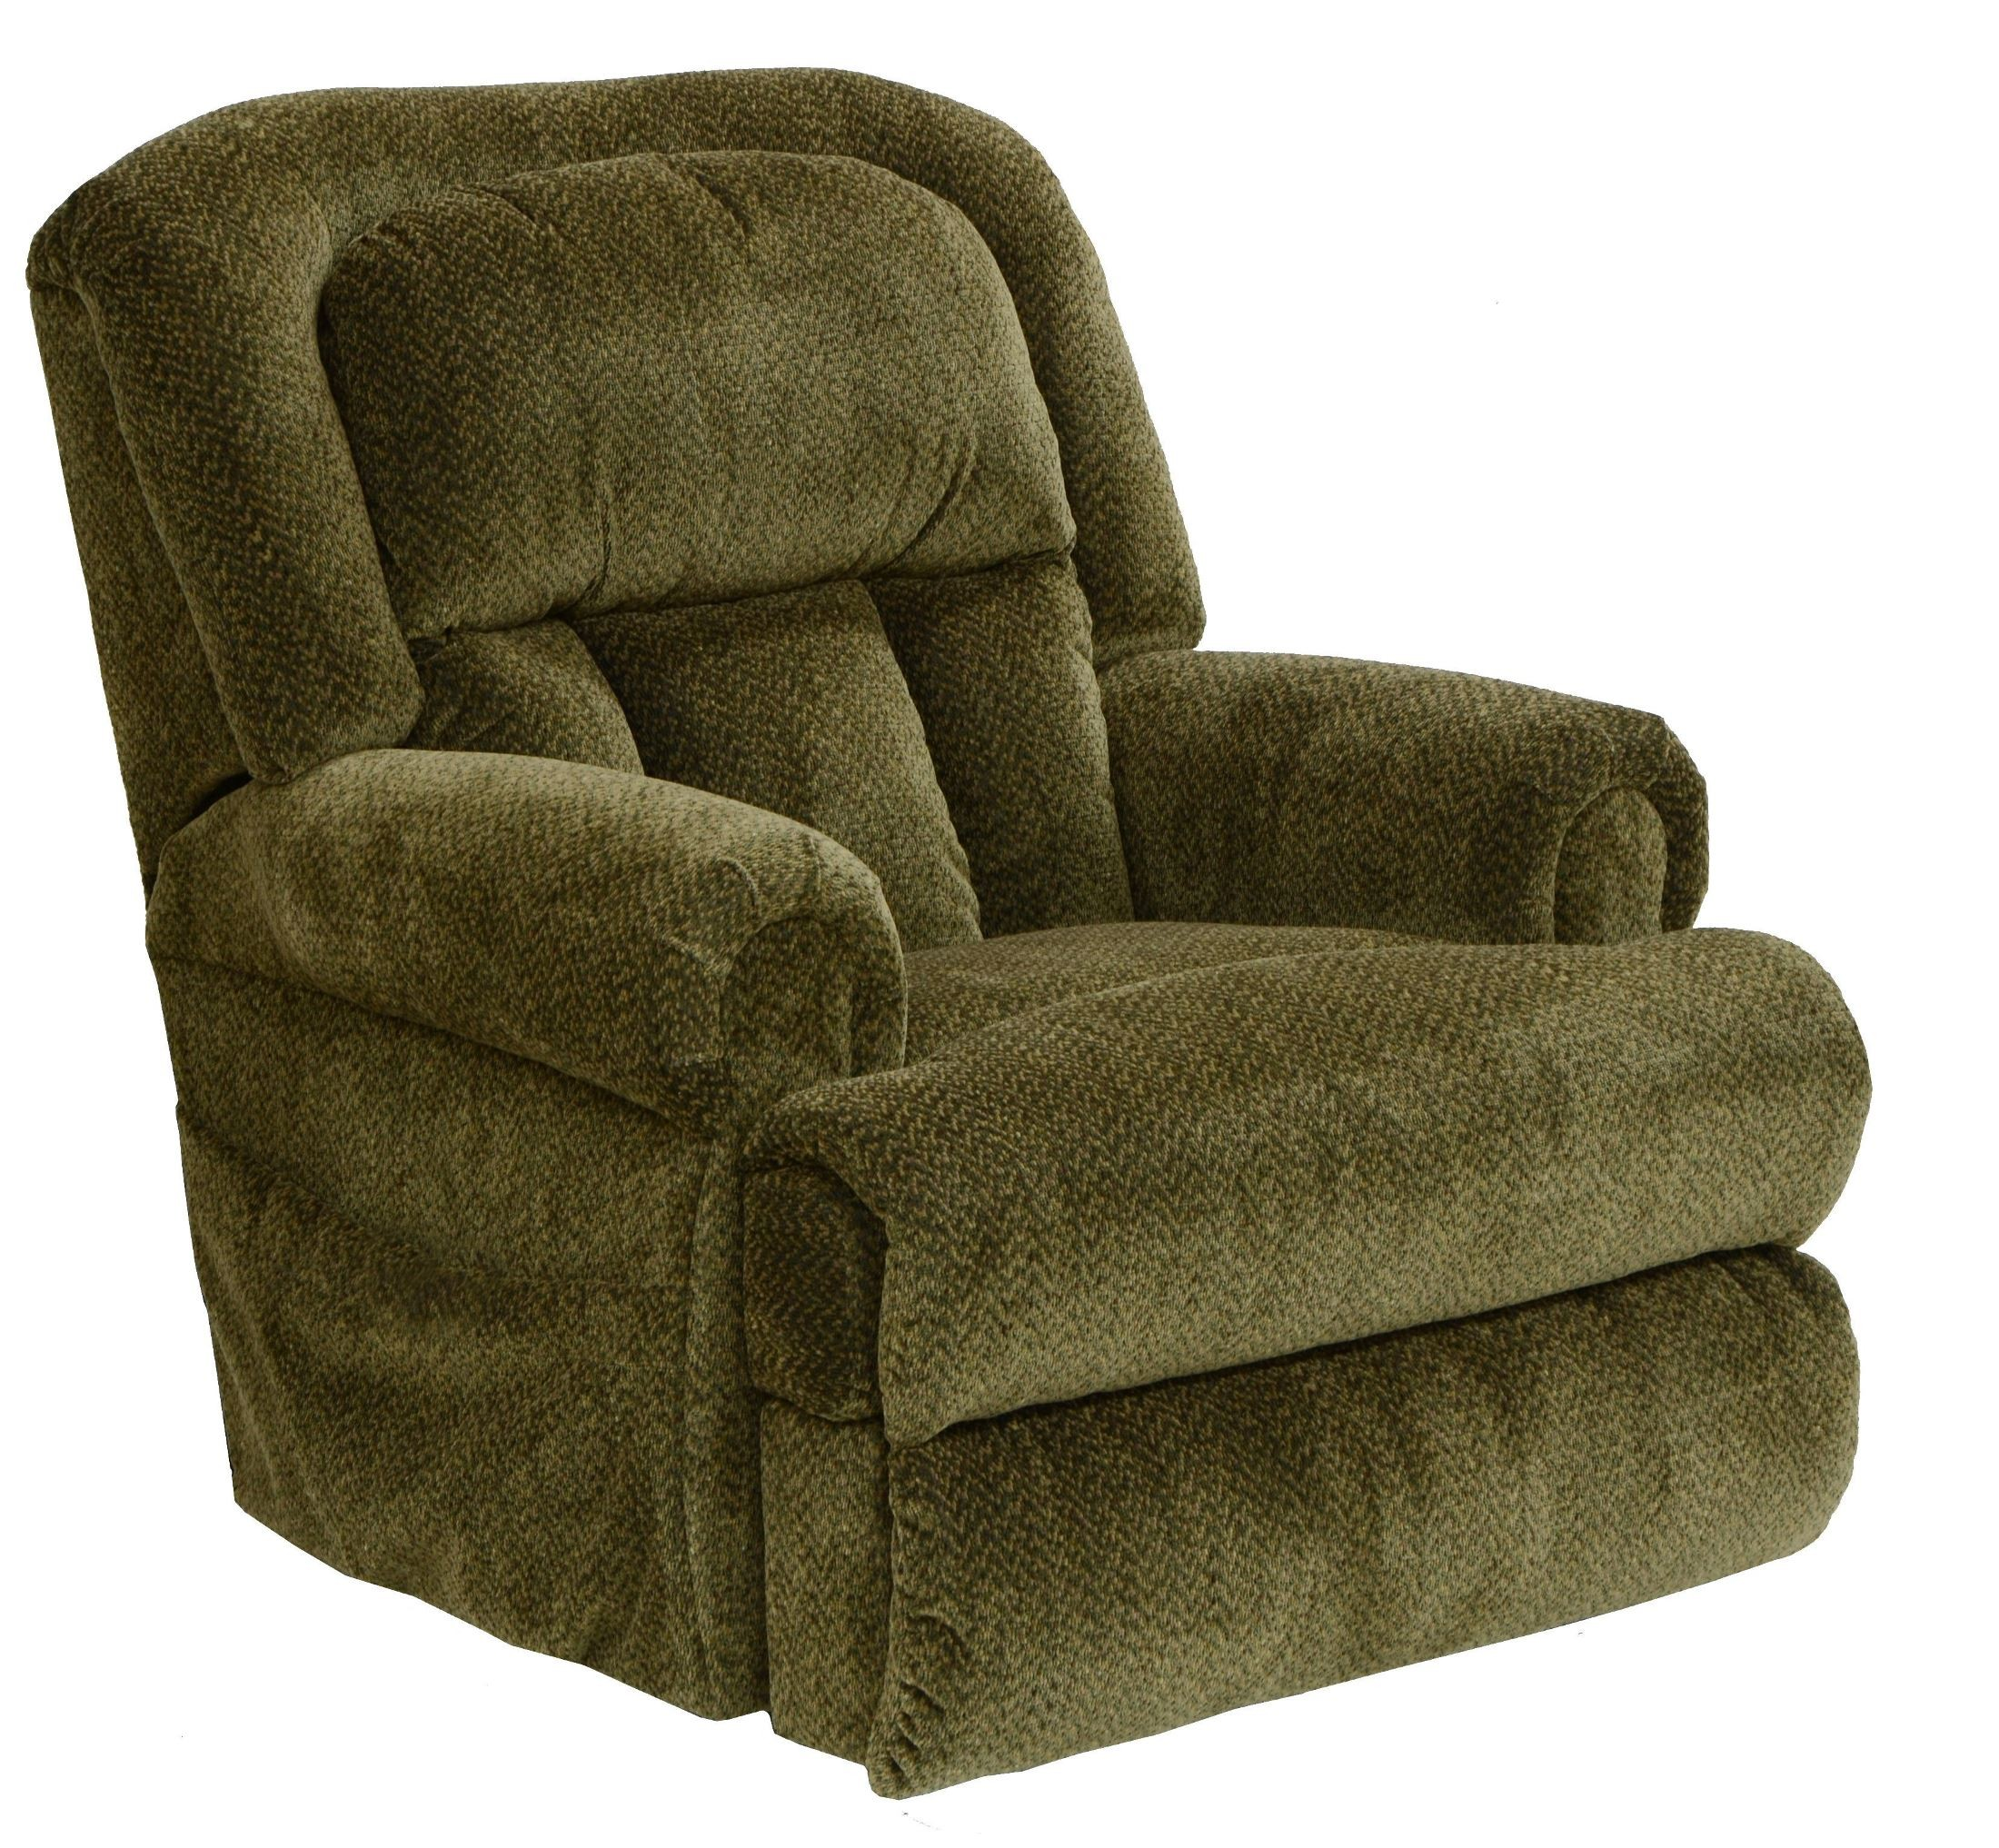 Burns Basil Power Lift Recliner From Catnapper 4847176325